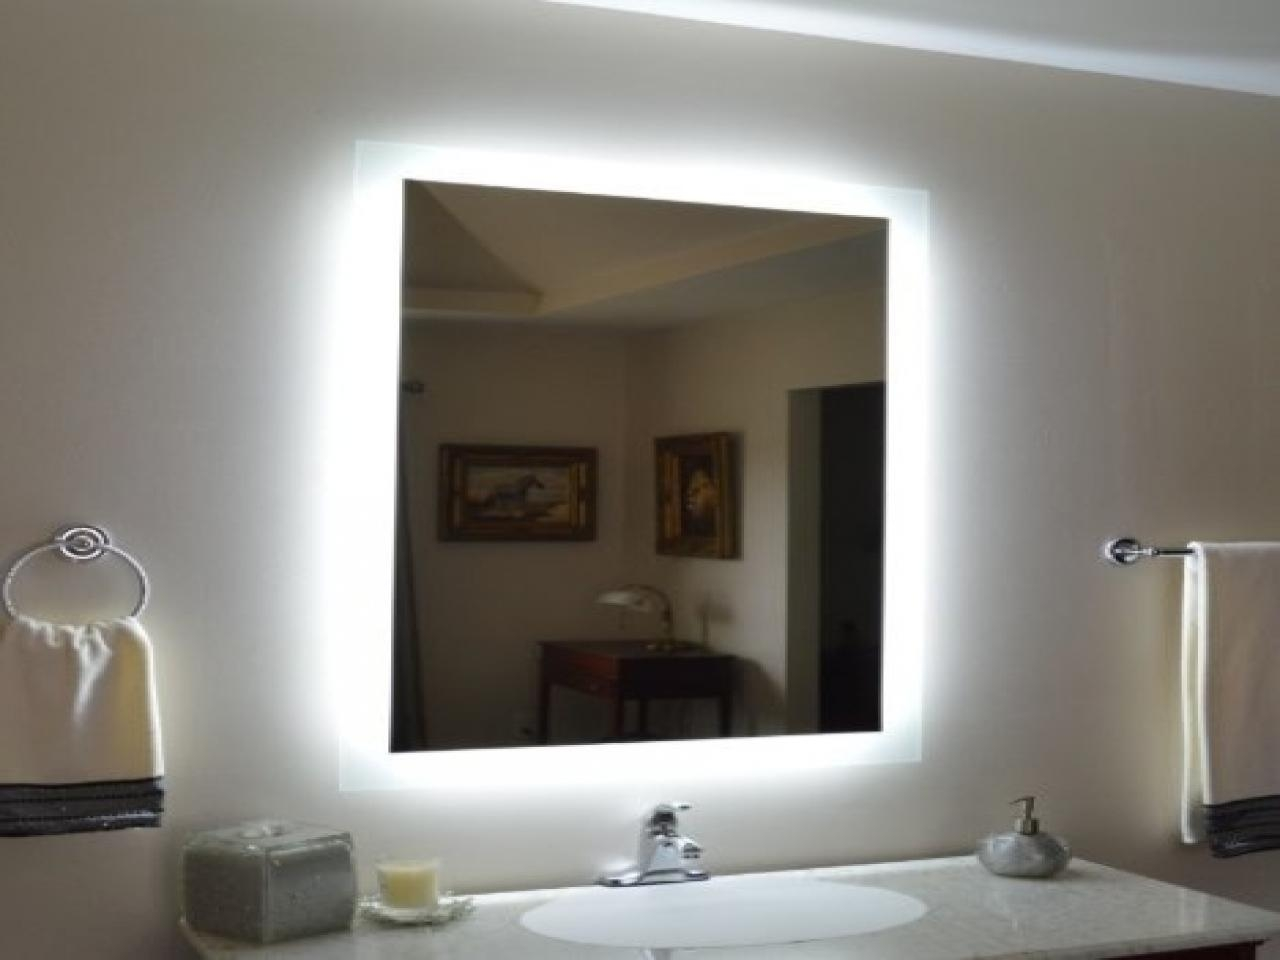 Lighted Vanity Mirror Wall Mount Ideas — The Homy Design With Lighted Vanity Mirrors For Bathroom (Image 16 of 20)